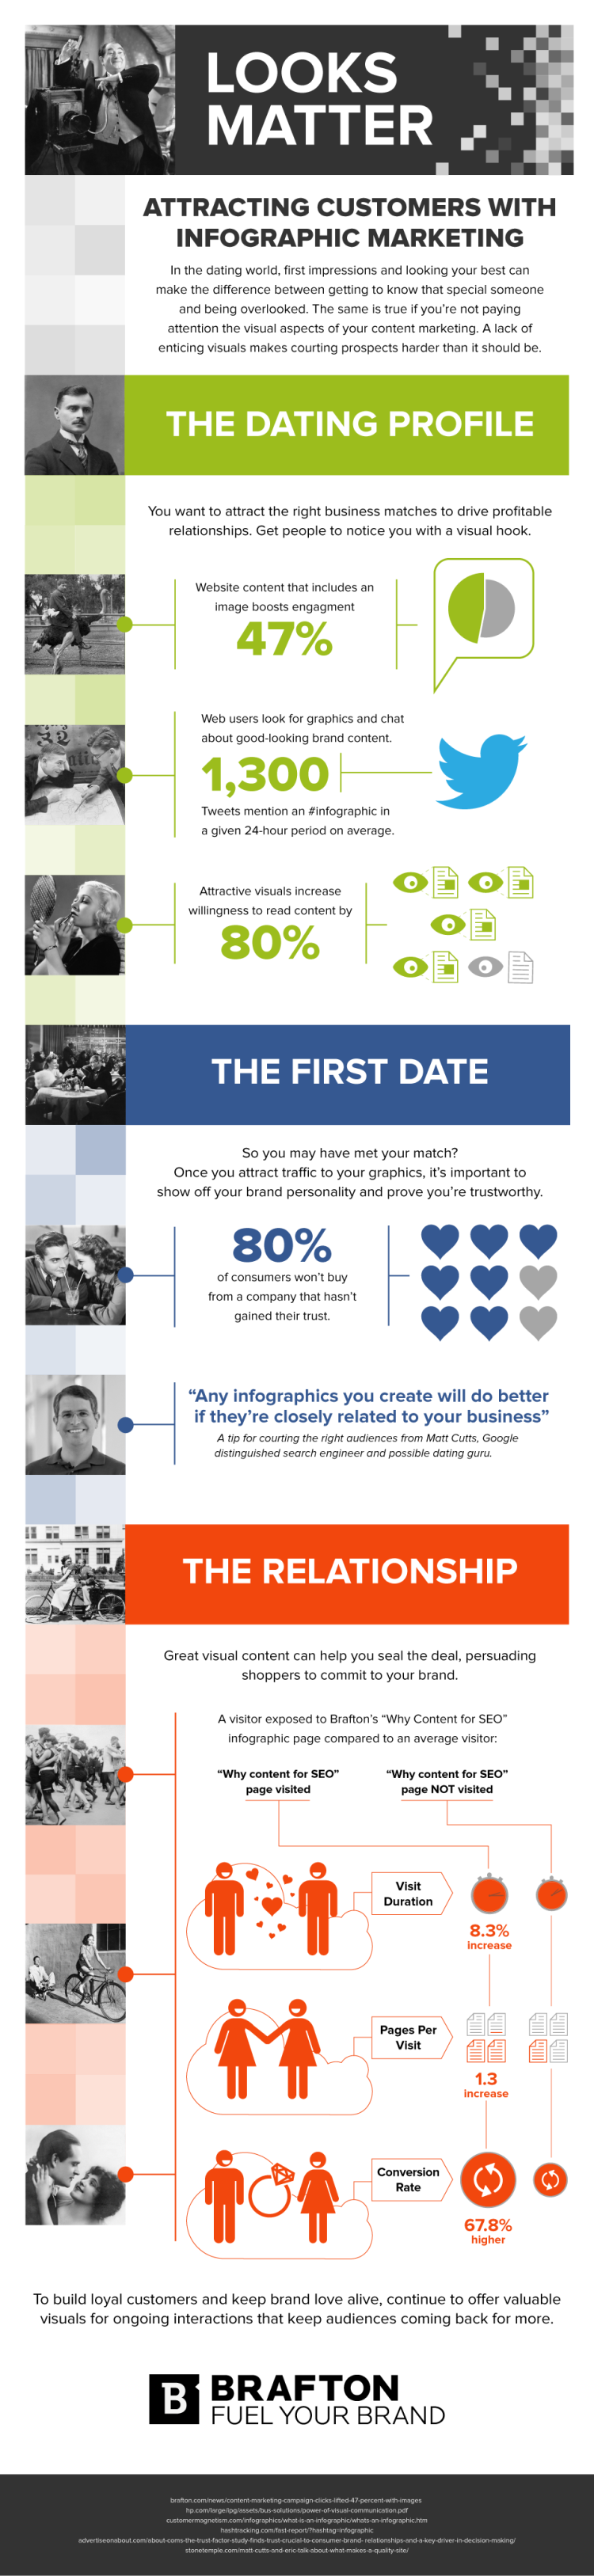 Infographic: Attracting Customer With Infographic Marketing